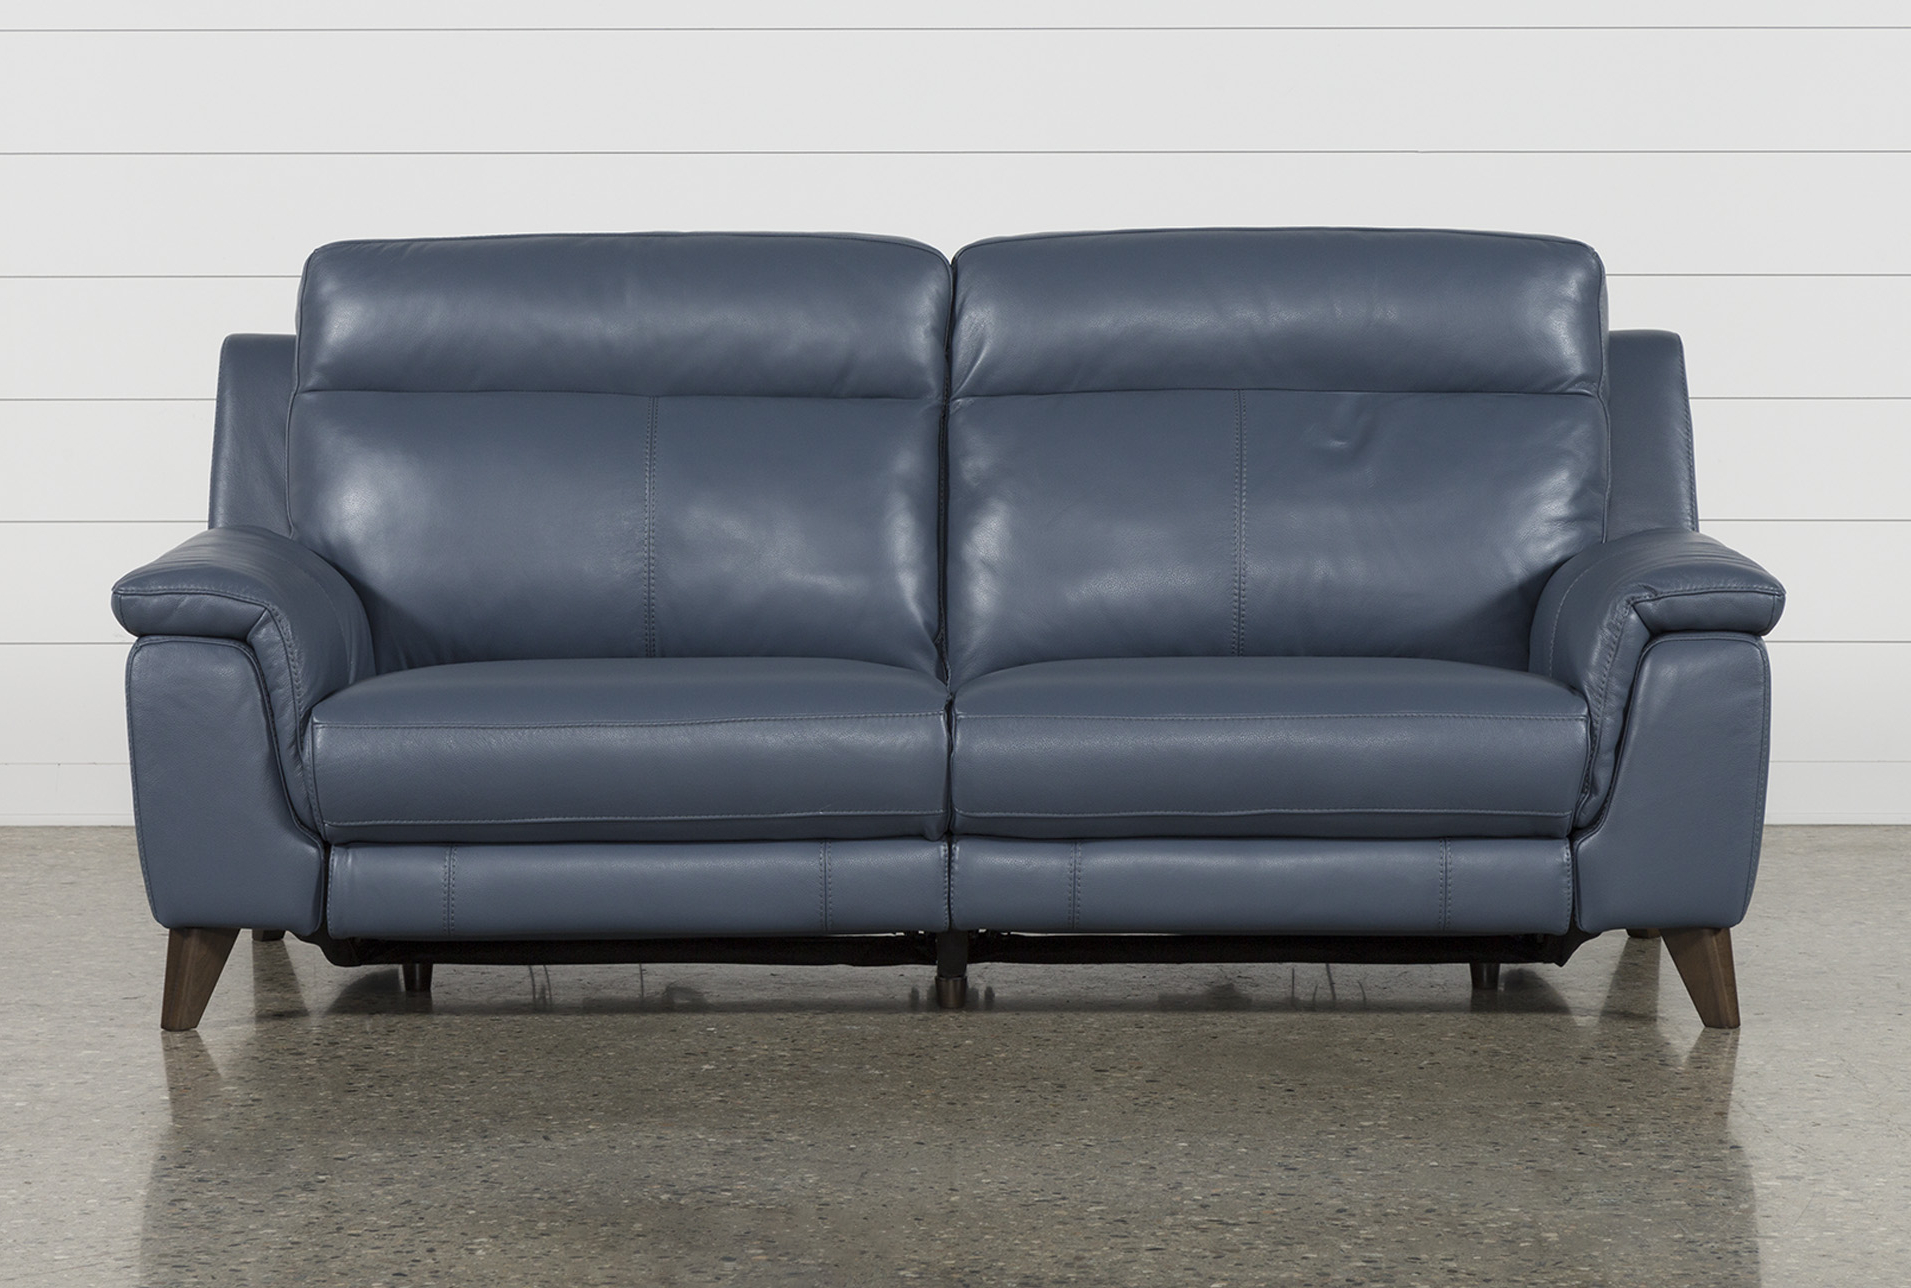 Recent Moana Blue Leather Power Reclining Sofa Chairs With Usb Throughout Moana Blue Leather Dual Power Reclining Sofa With Usb In (View 3 of 20)